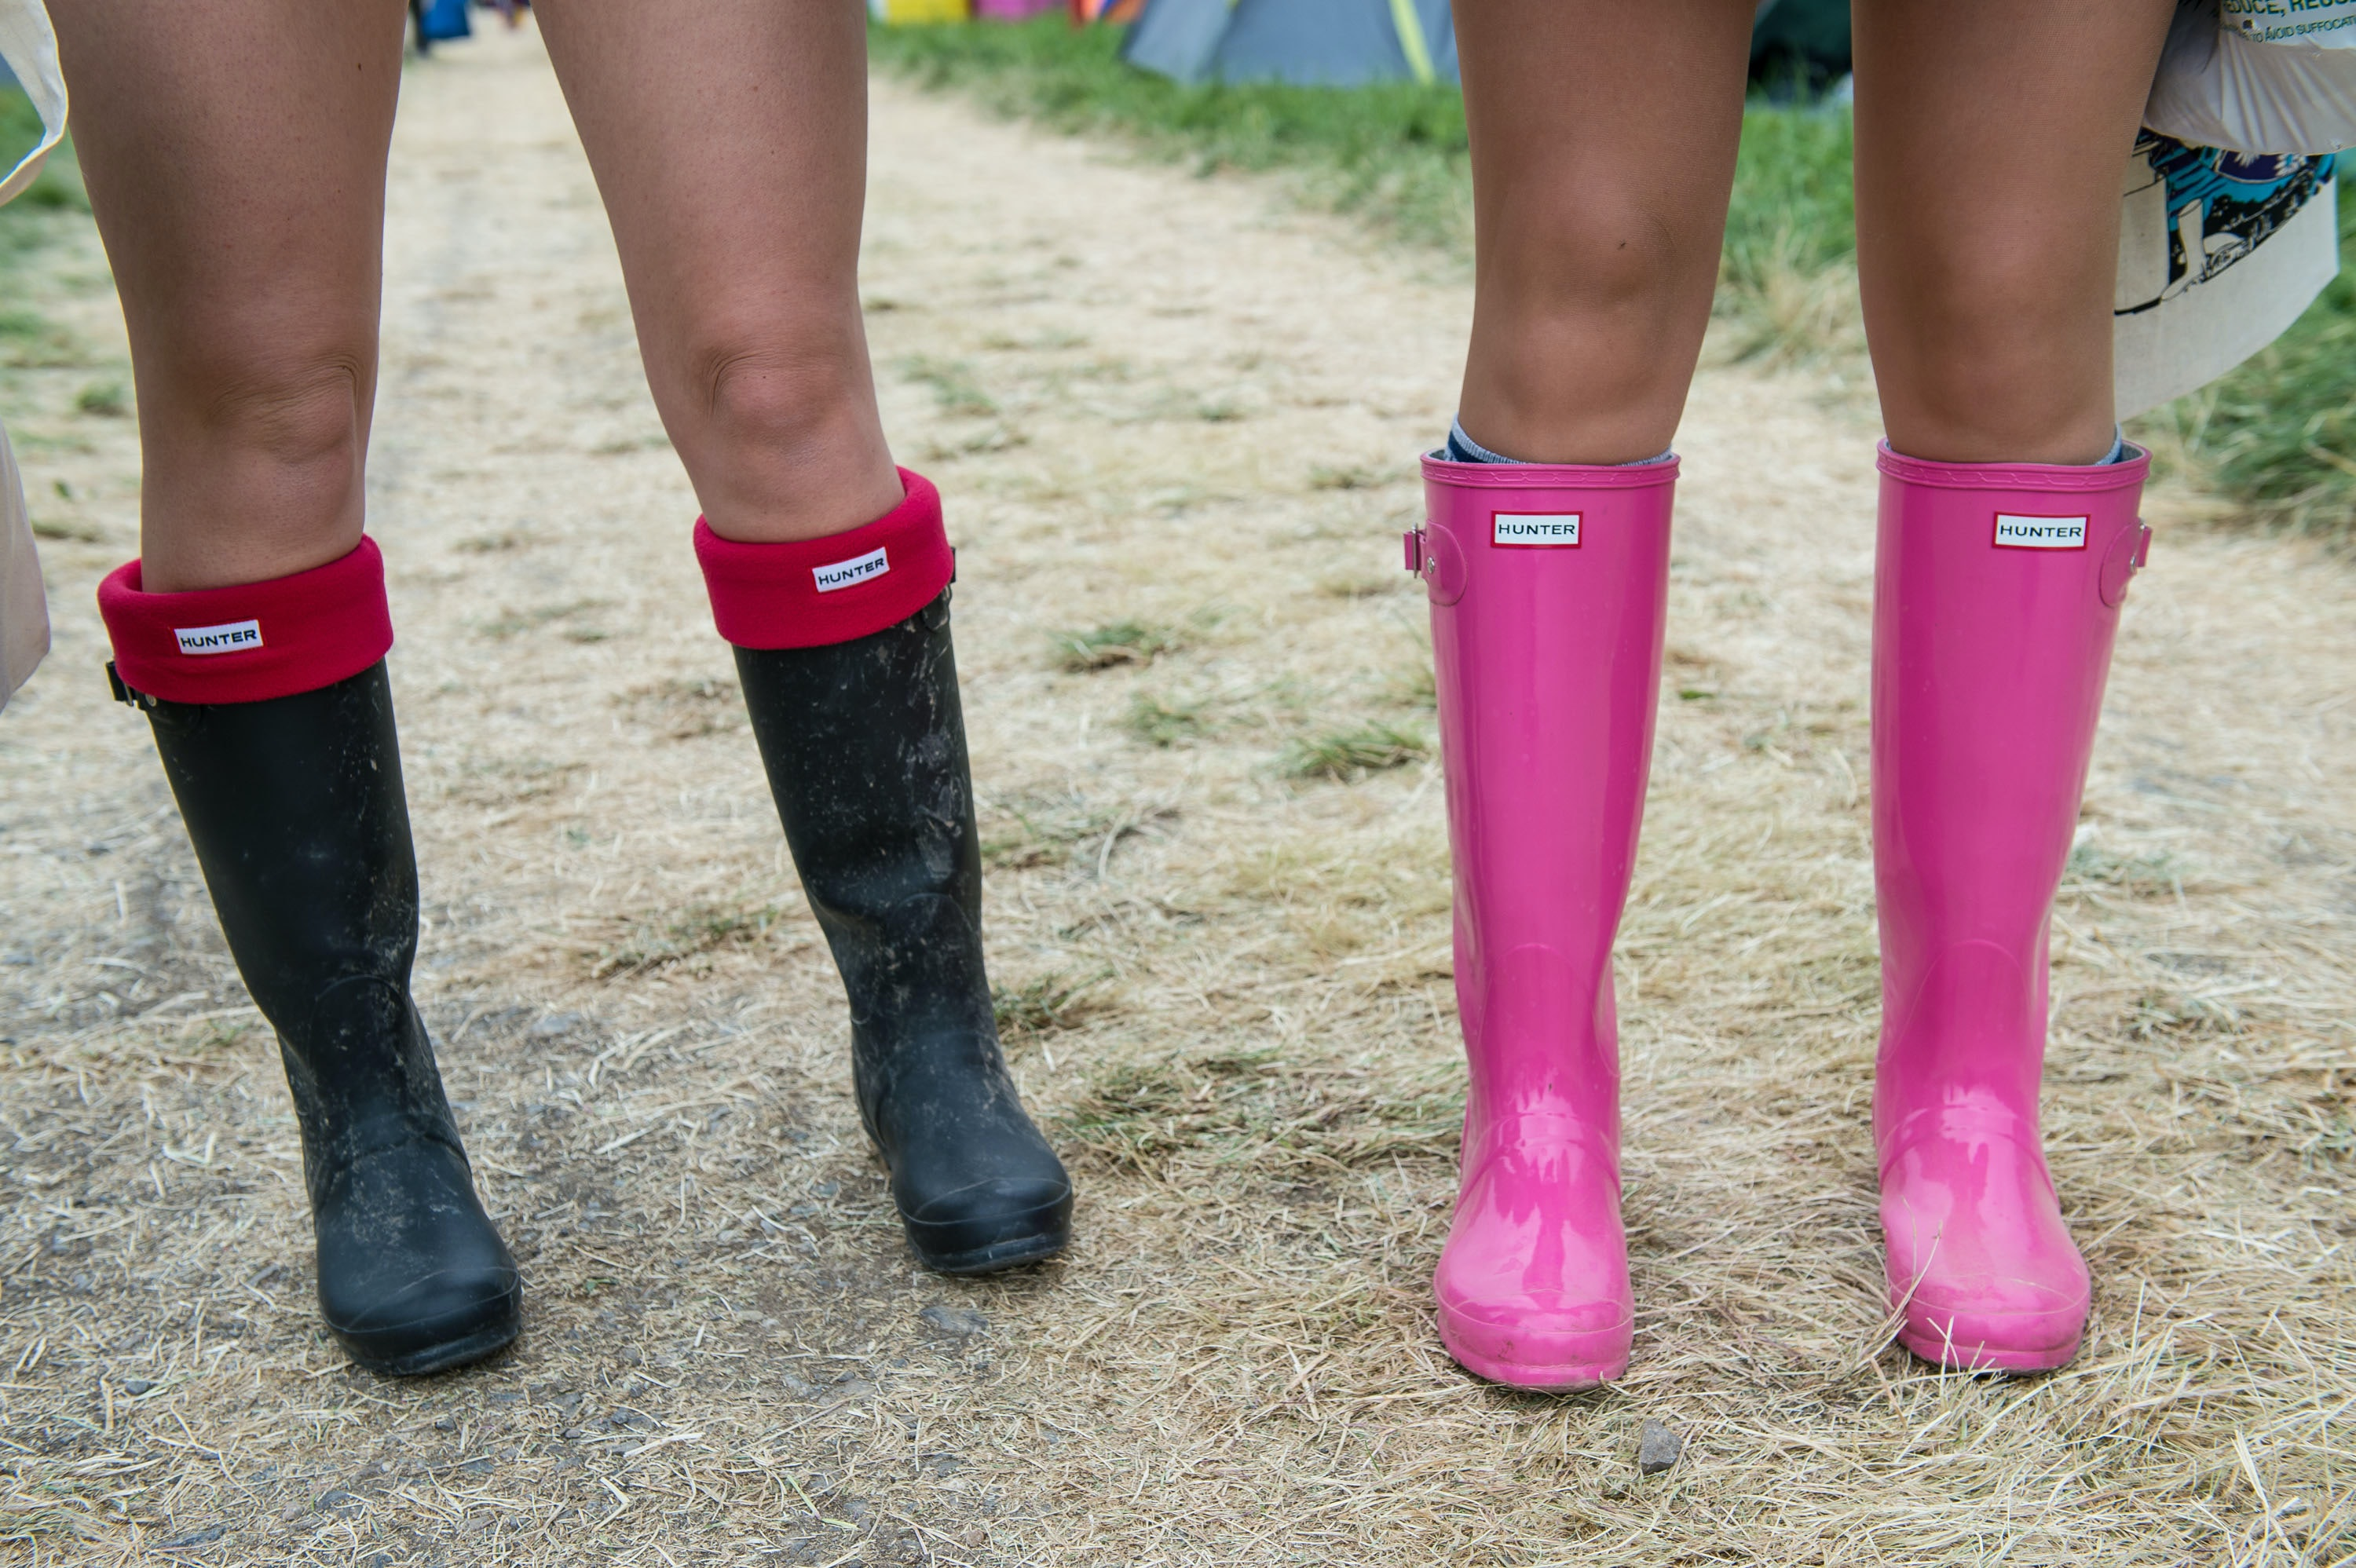 baf218ce42c When Do Hunter Boots x Target Drop? Just In Time For Festival Season